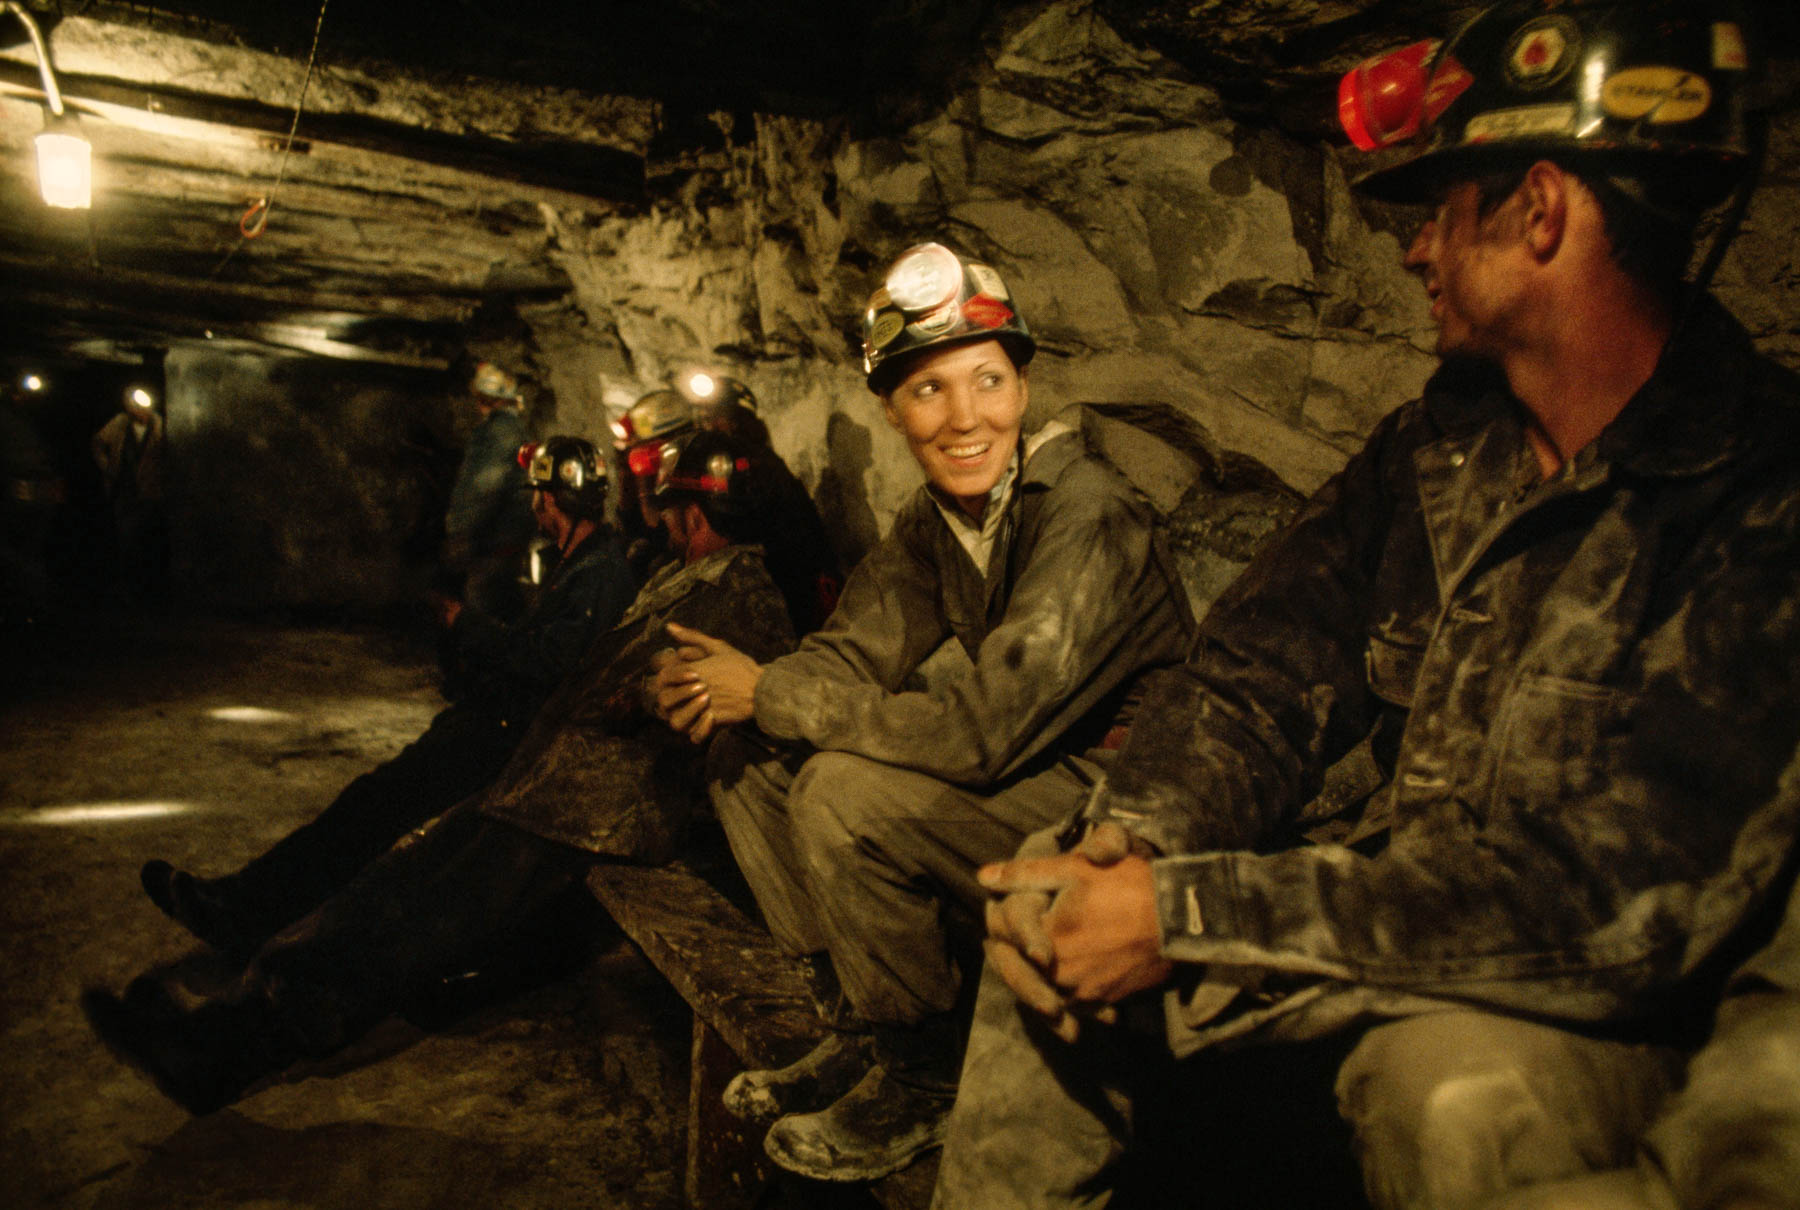 Woman sitting, smiling in coal mine next to other miners (© Jodi Cobb/National Geographic Creative)